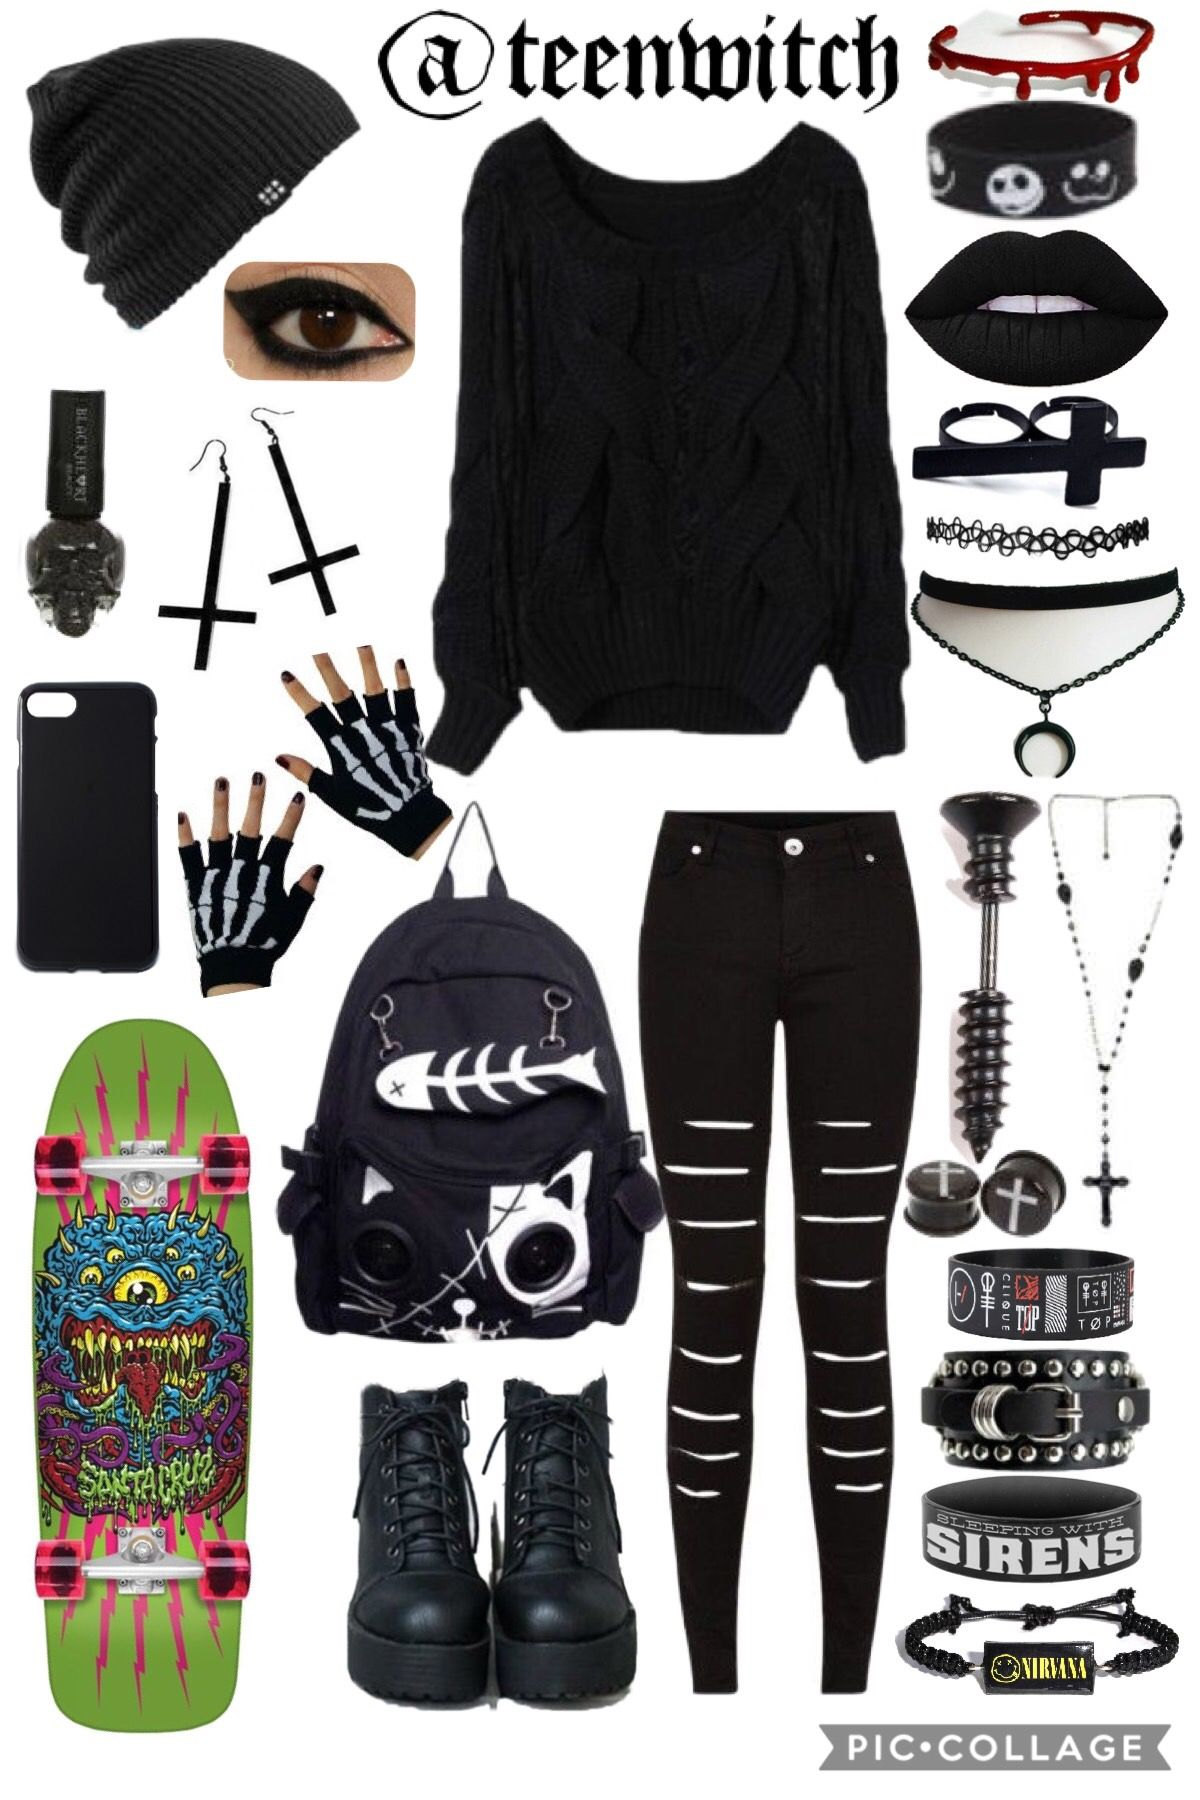 🔮weekend outfit🔮  Scene outfits, Cool outfits, Punk outfits